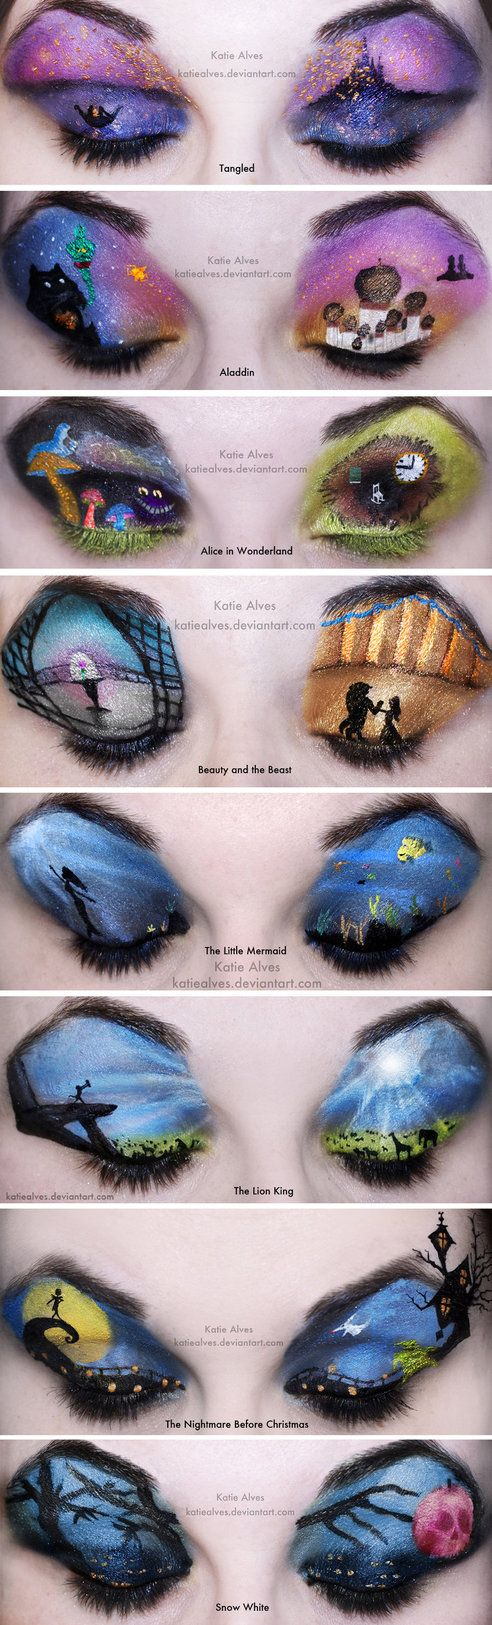 amazing makeup of Disney scenes that I found on Deviantart.com. I absolutely love this! <3